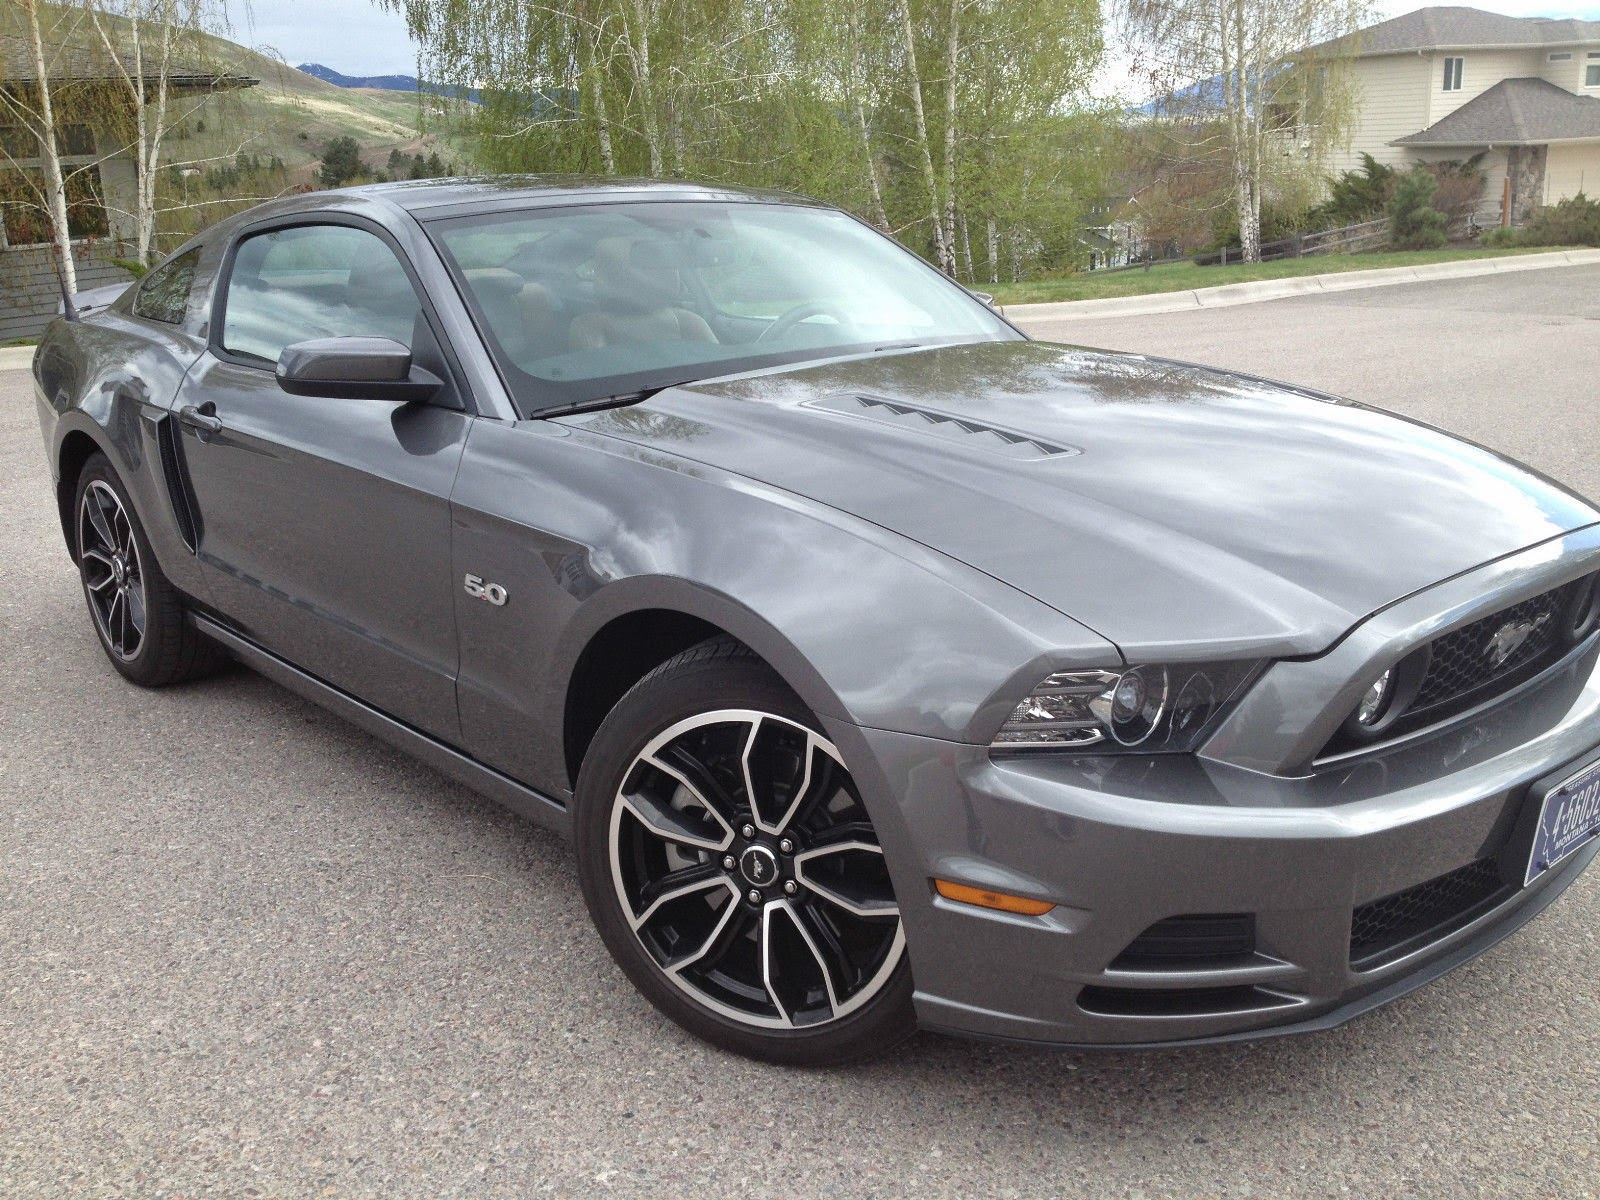 2013 ford mustang gt premium for sale american muscle cars. Black Bedroom Furniture Sets. Home Design Ideas